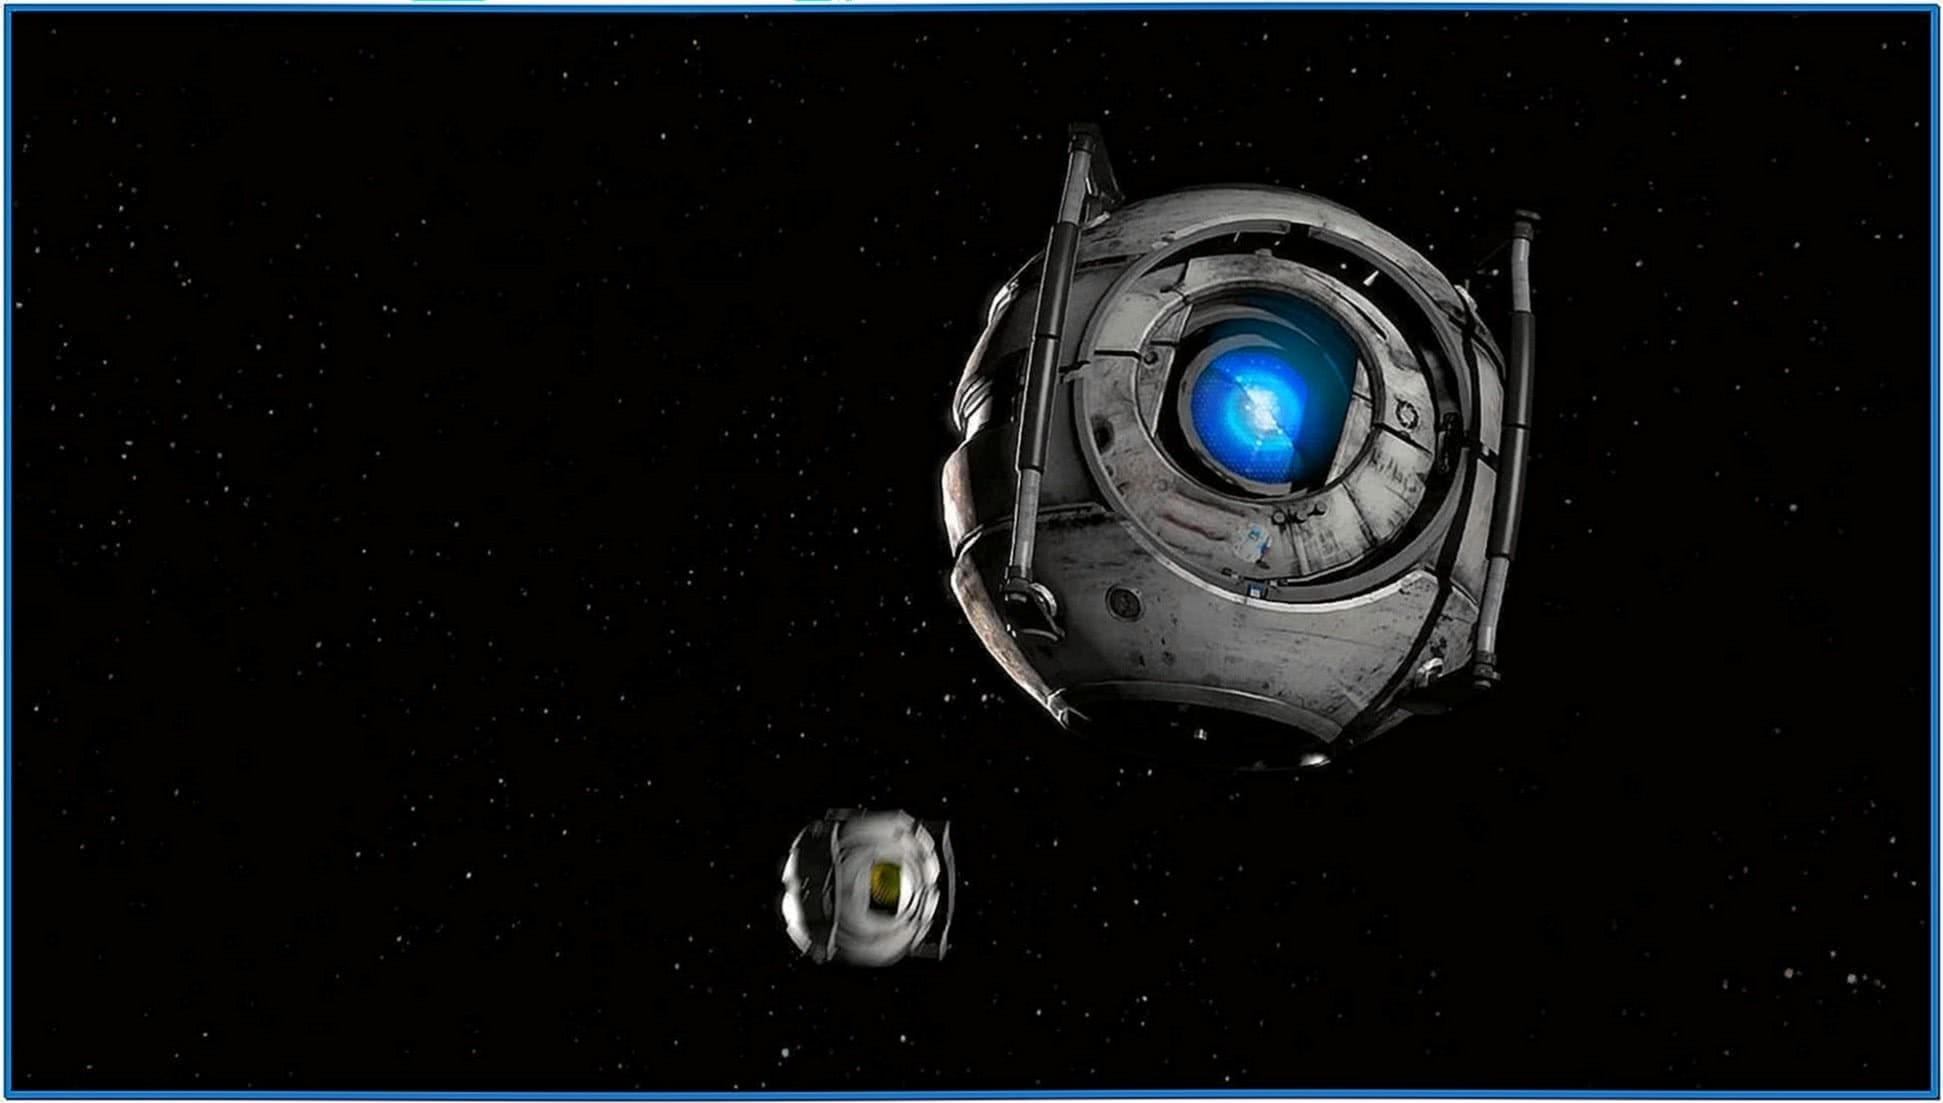 Wheatley in Space Screensaver Mac